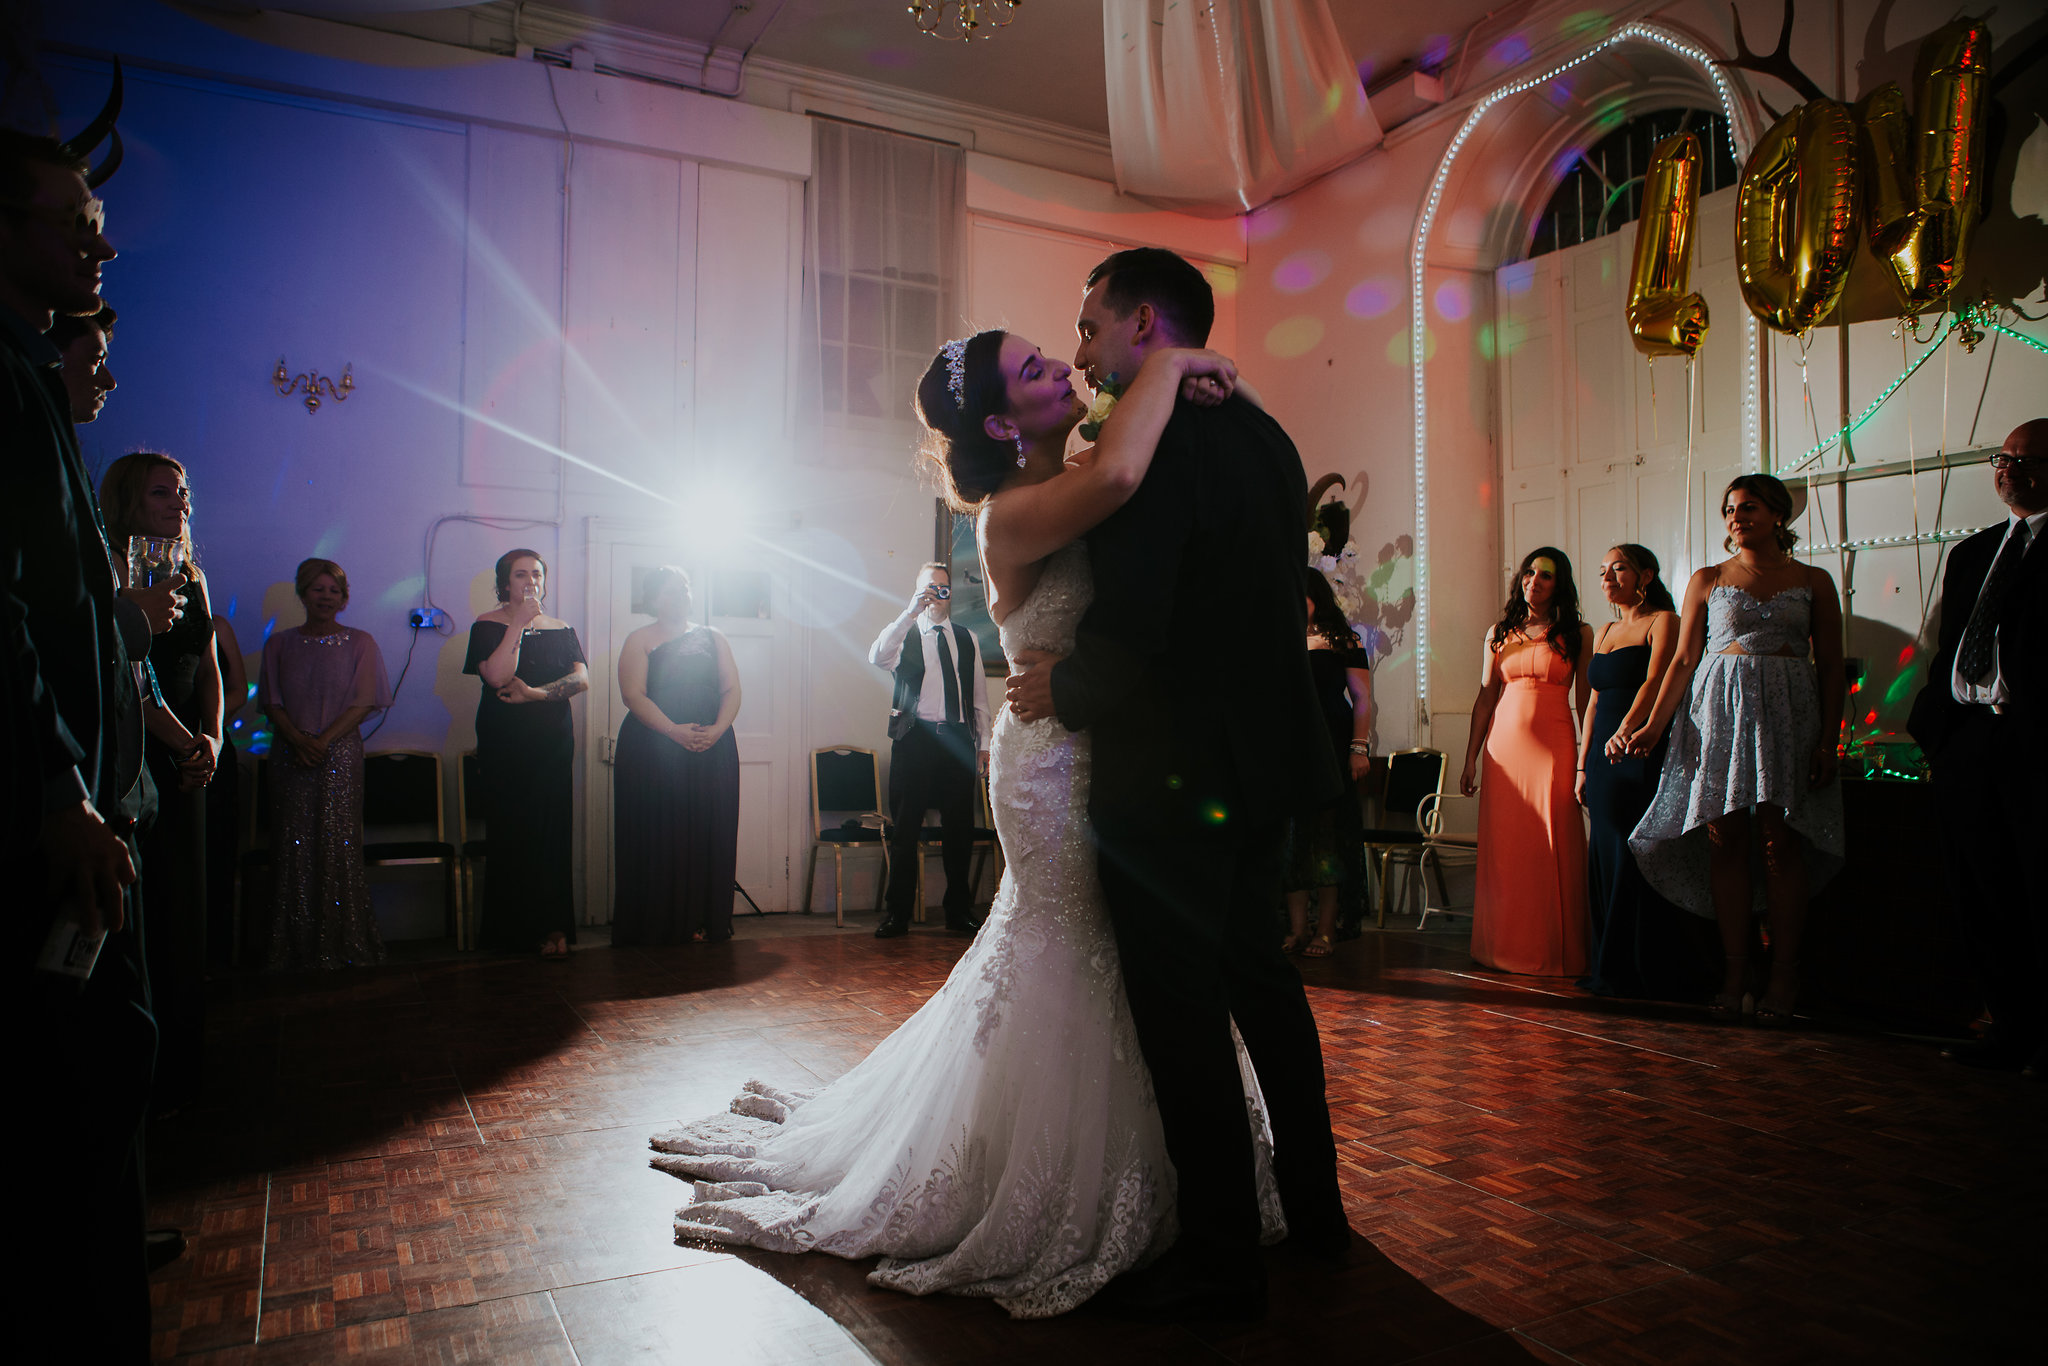 Duns_Castle_wedding_photographer_ross_alexander_photography (118).jpg